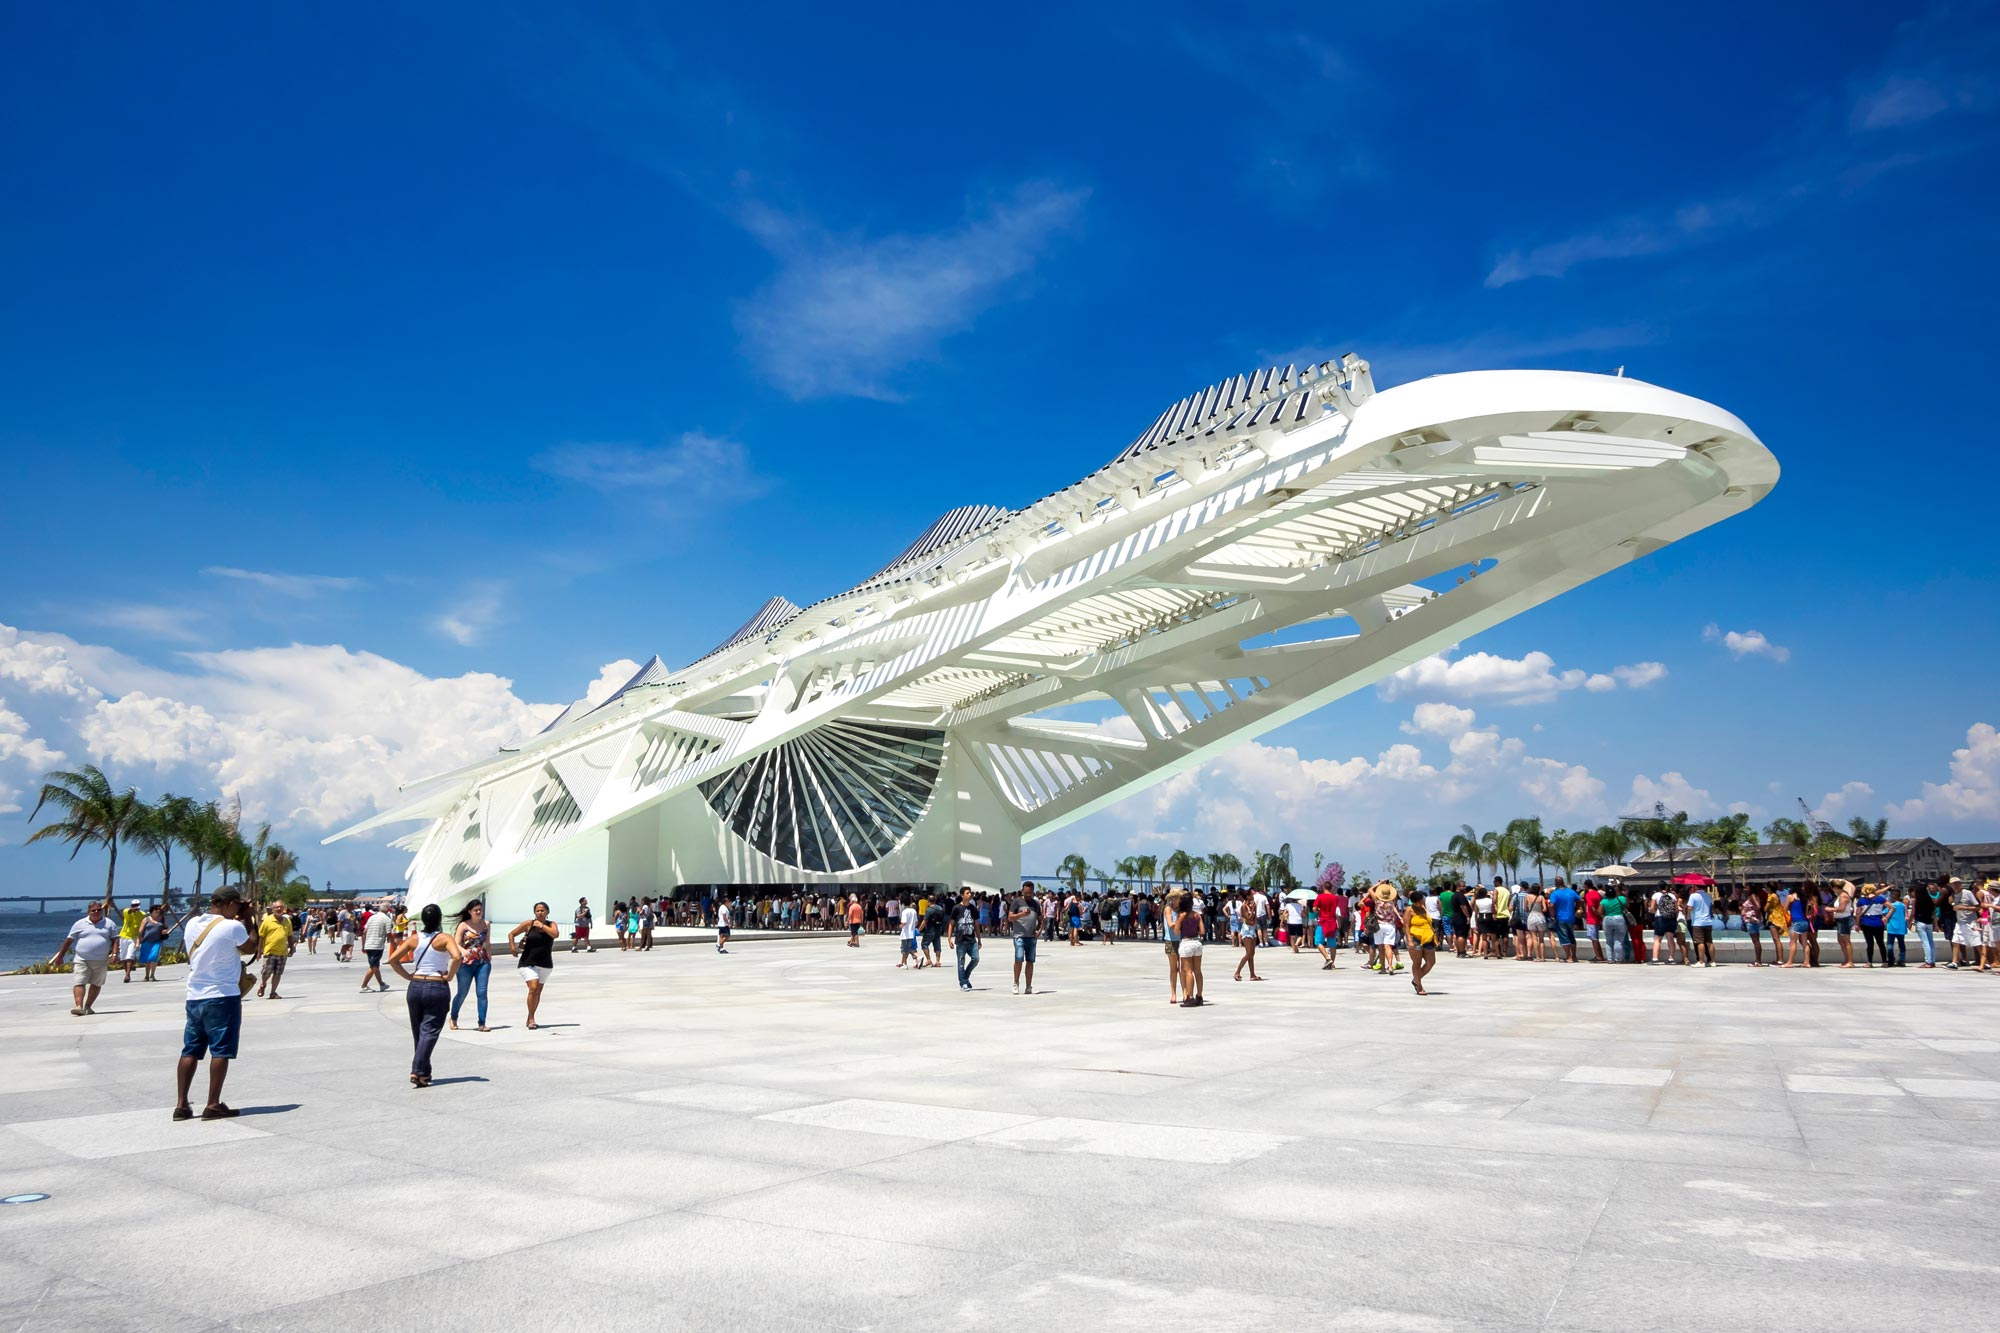 Rio's newly finished Museu do Amanhã (Museum of Tomorrow) is certainly a right step in creating public awareness for science. Still, its construction relied heavily on private sponsors. Photo: iStock.com/rmnunes